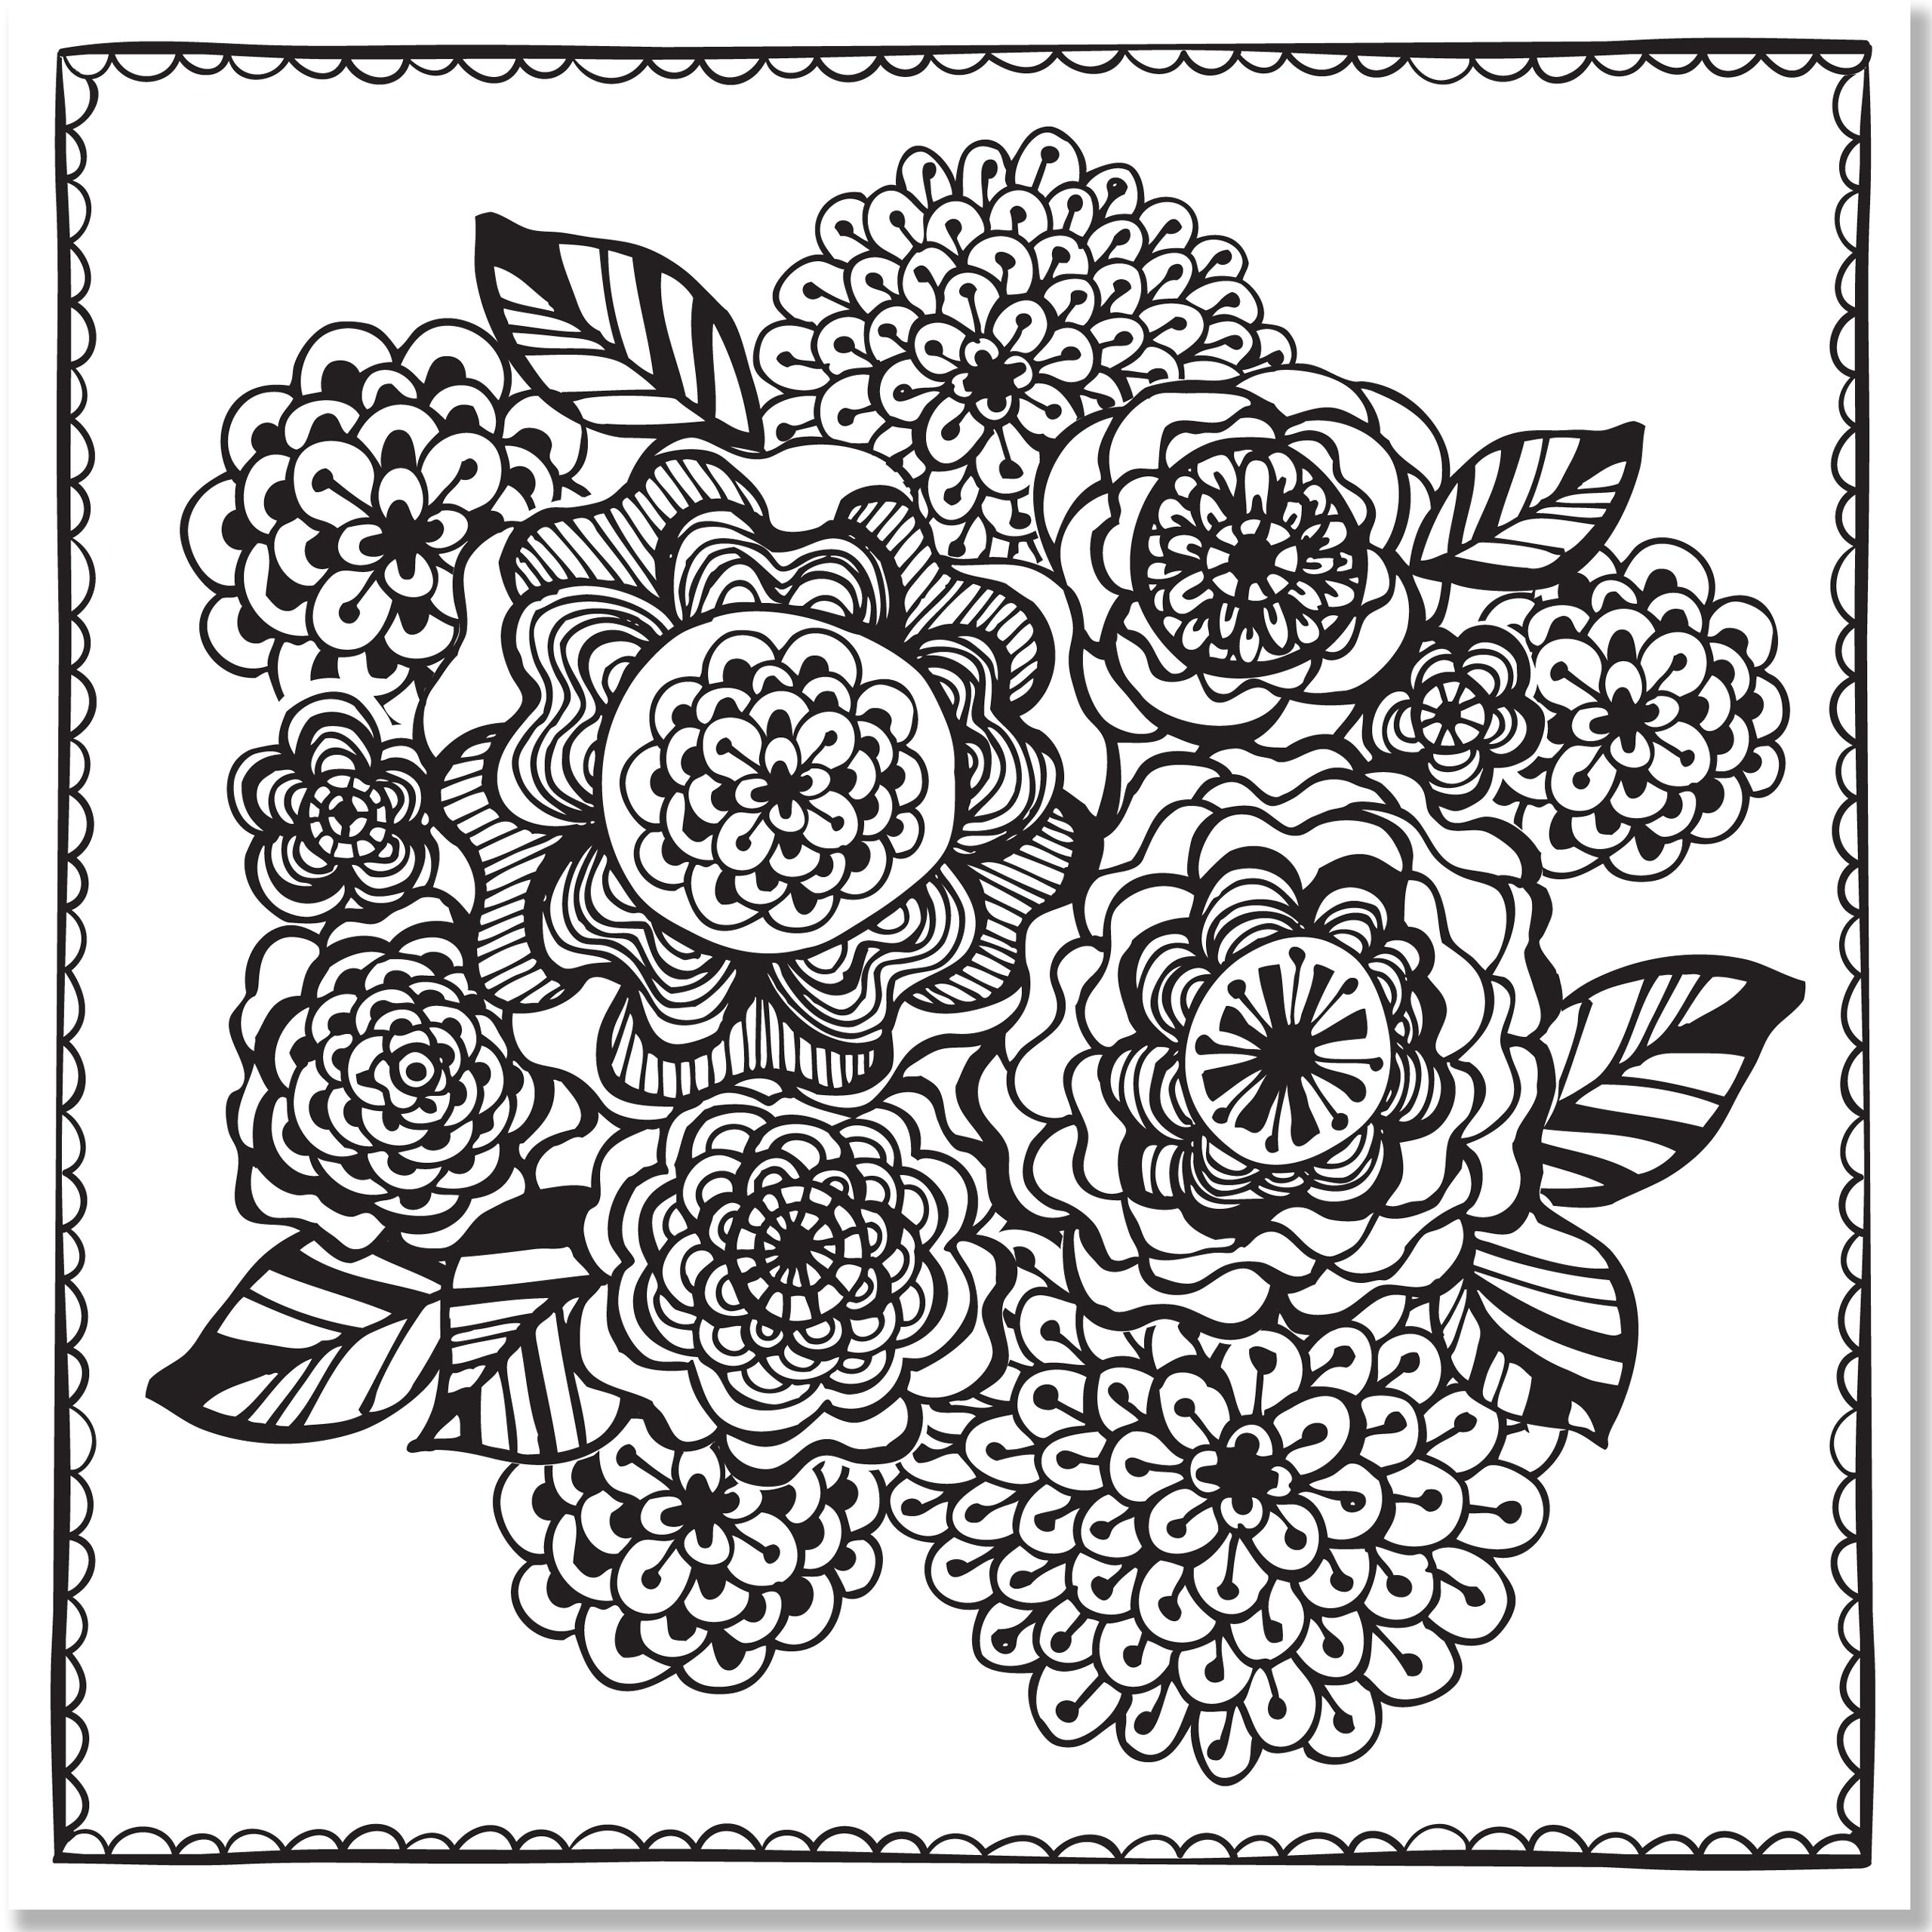 Amazon Joyful Designs Adult Coloring Book stress